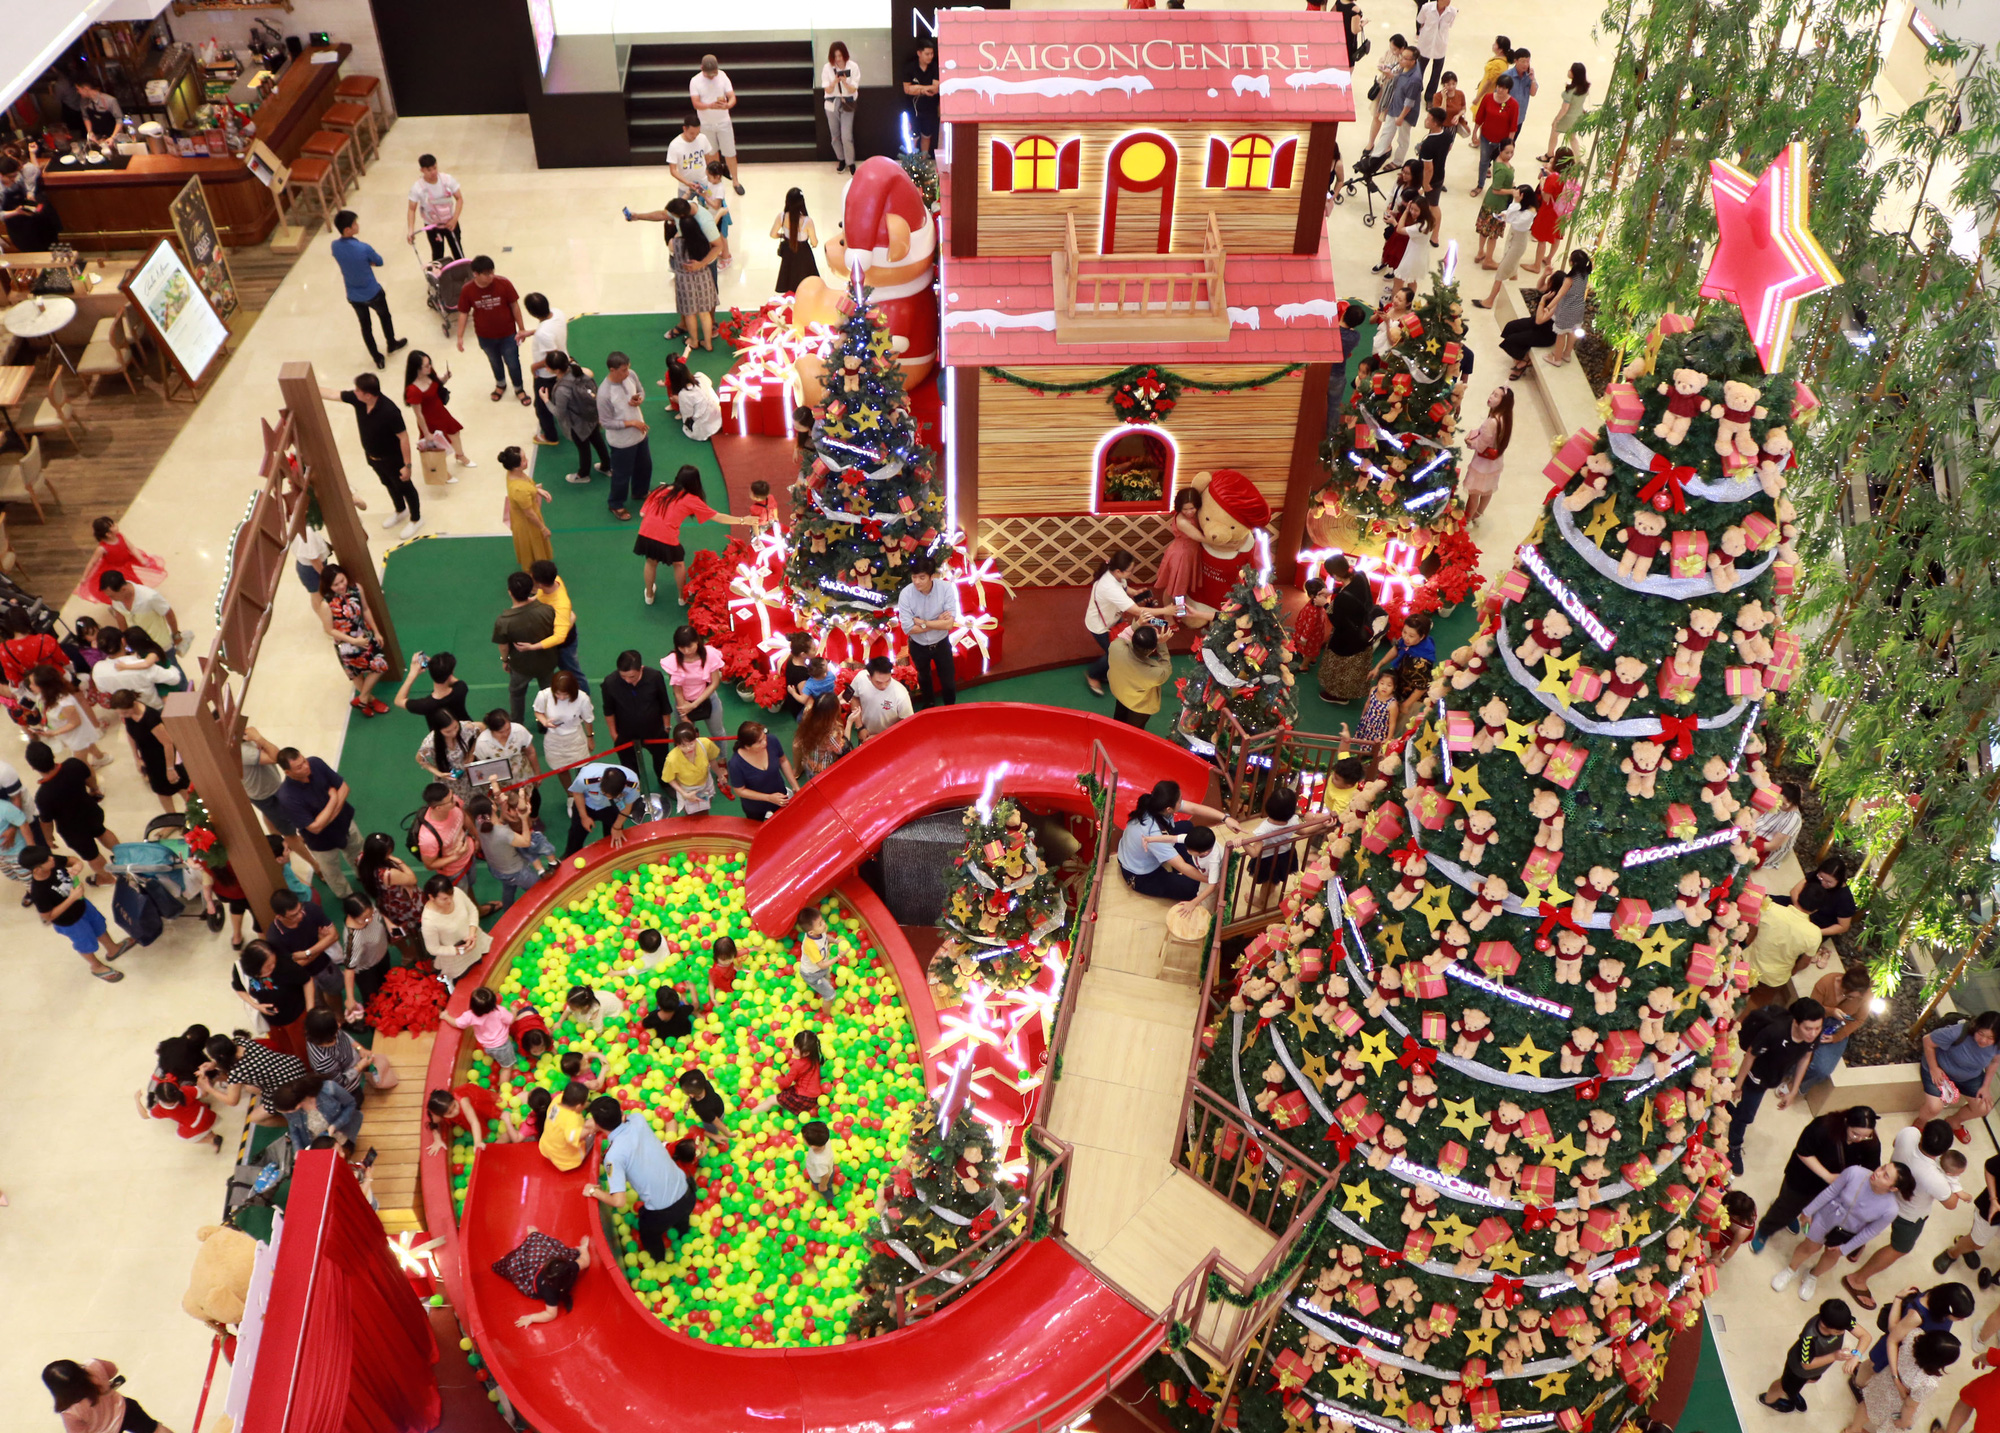 A giant Christmas tree inside Saigon Center in downtown Ho Chi Minh City. Photo: Nhat Thinh / Tuoi Tre